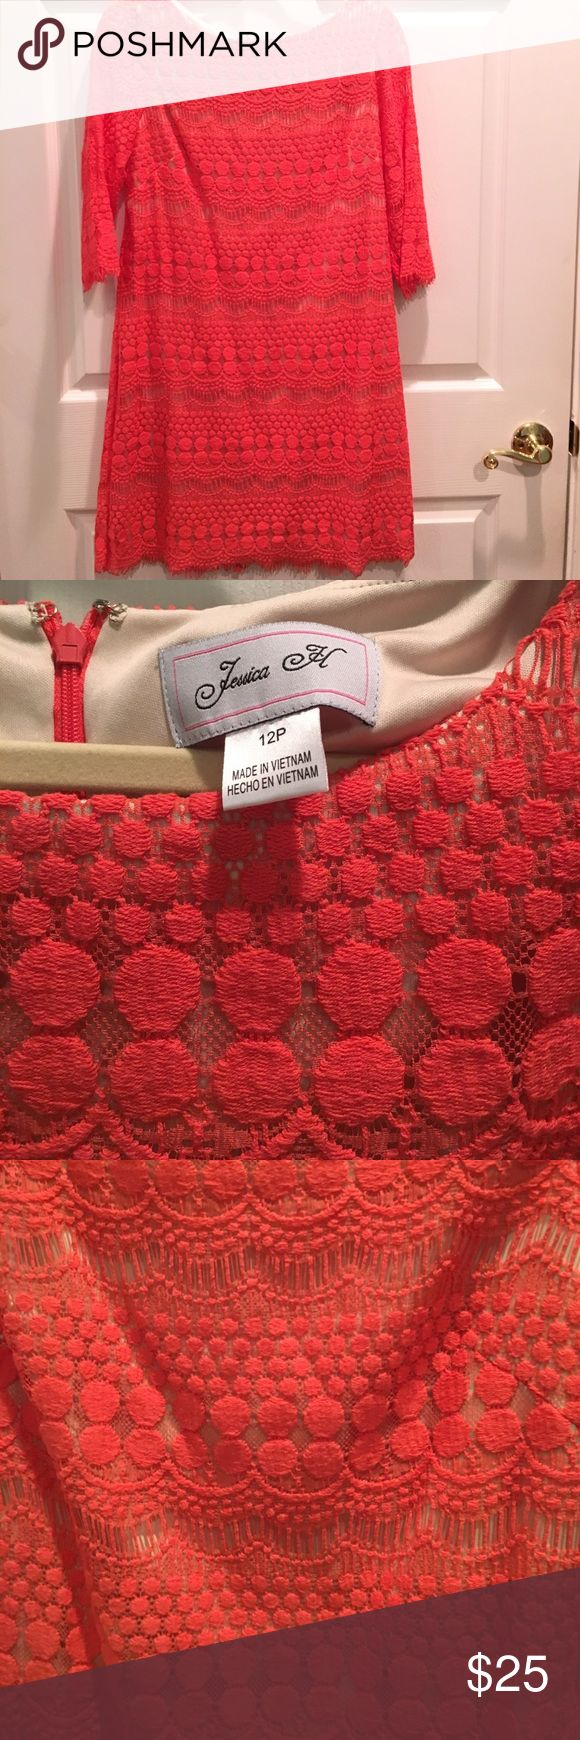 Coral Lace Dress 12p  EUC Coral lace dress with 3/4 sheer lace sleeves.  Body of dress is lined in nude fabric.  Scalloped clipped lace hem.  Dress made of 63% cotton 37% nylon.  Lining made of 100% polyester.  Size 12p.  Made by Jessica H.  EUC.  Only worn twice. Jessica H Dresses